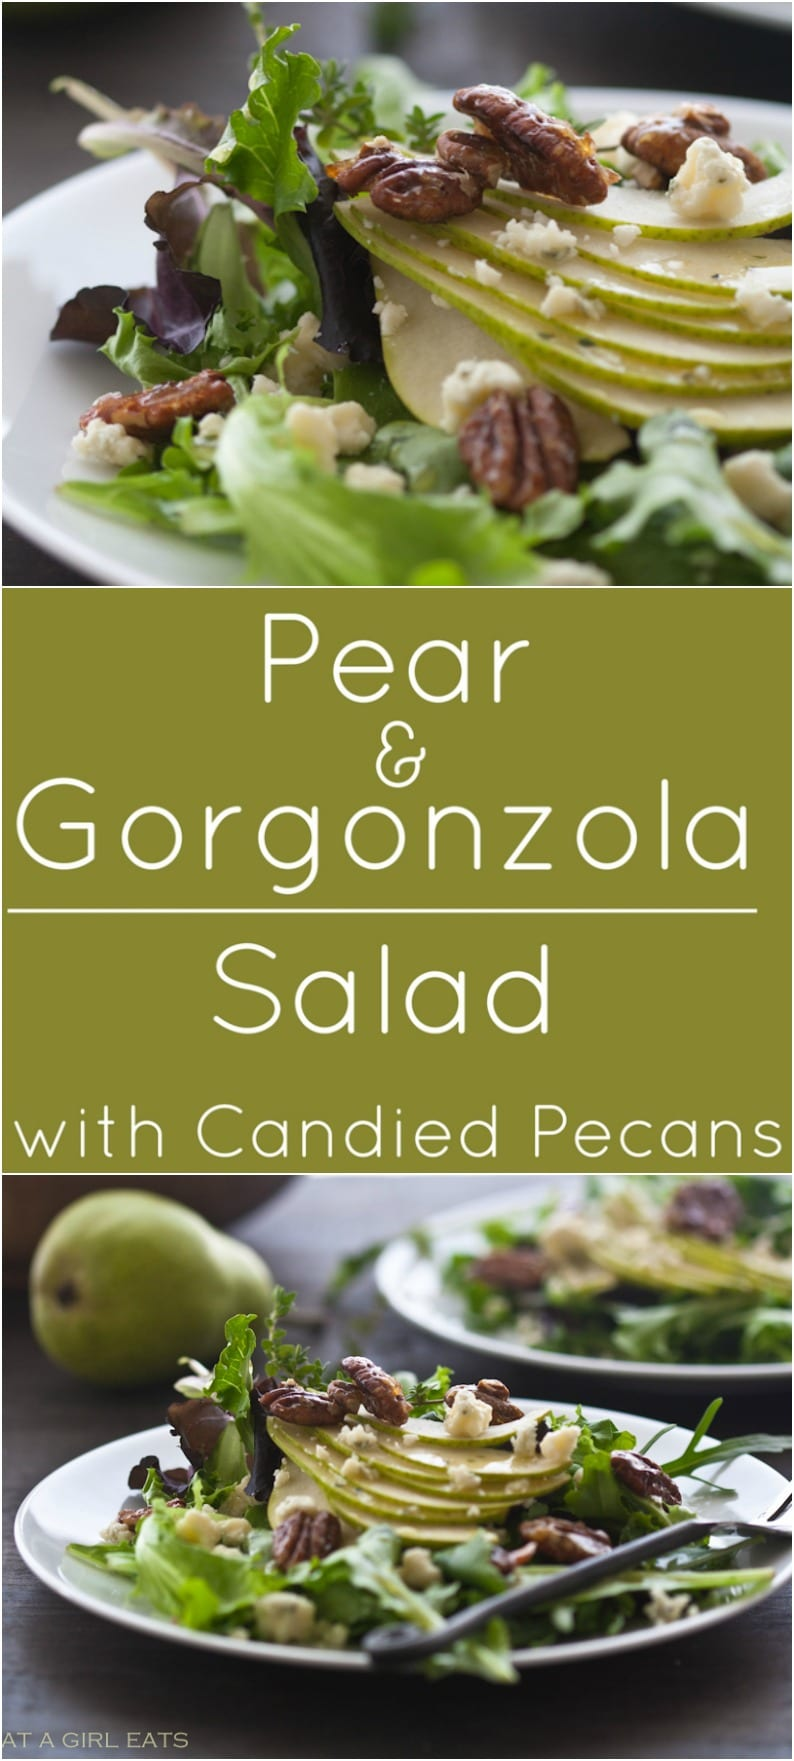 Pear and Gorgonzola Salad with Candied Pecans. Naturally gluten free!